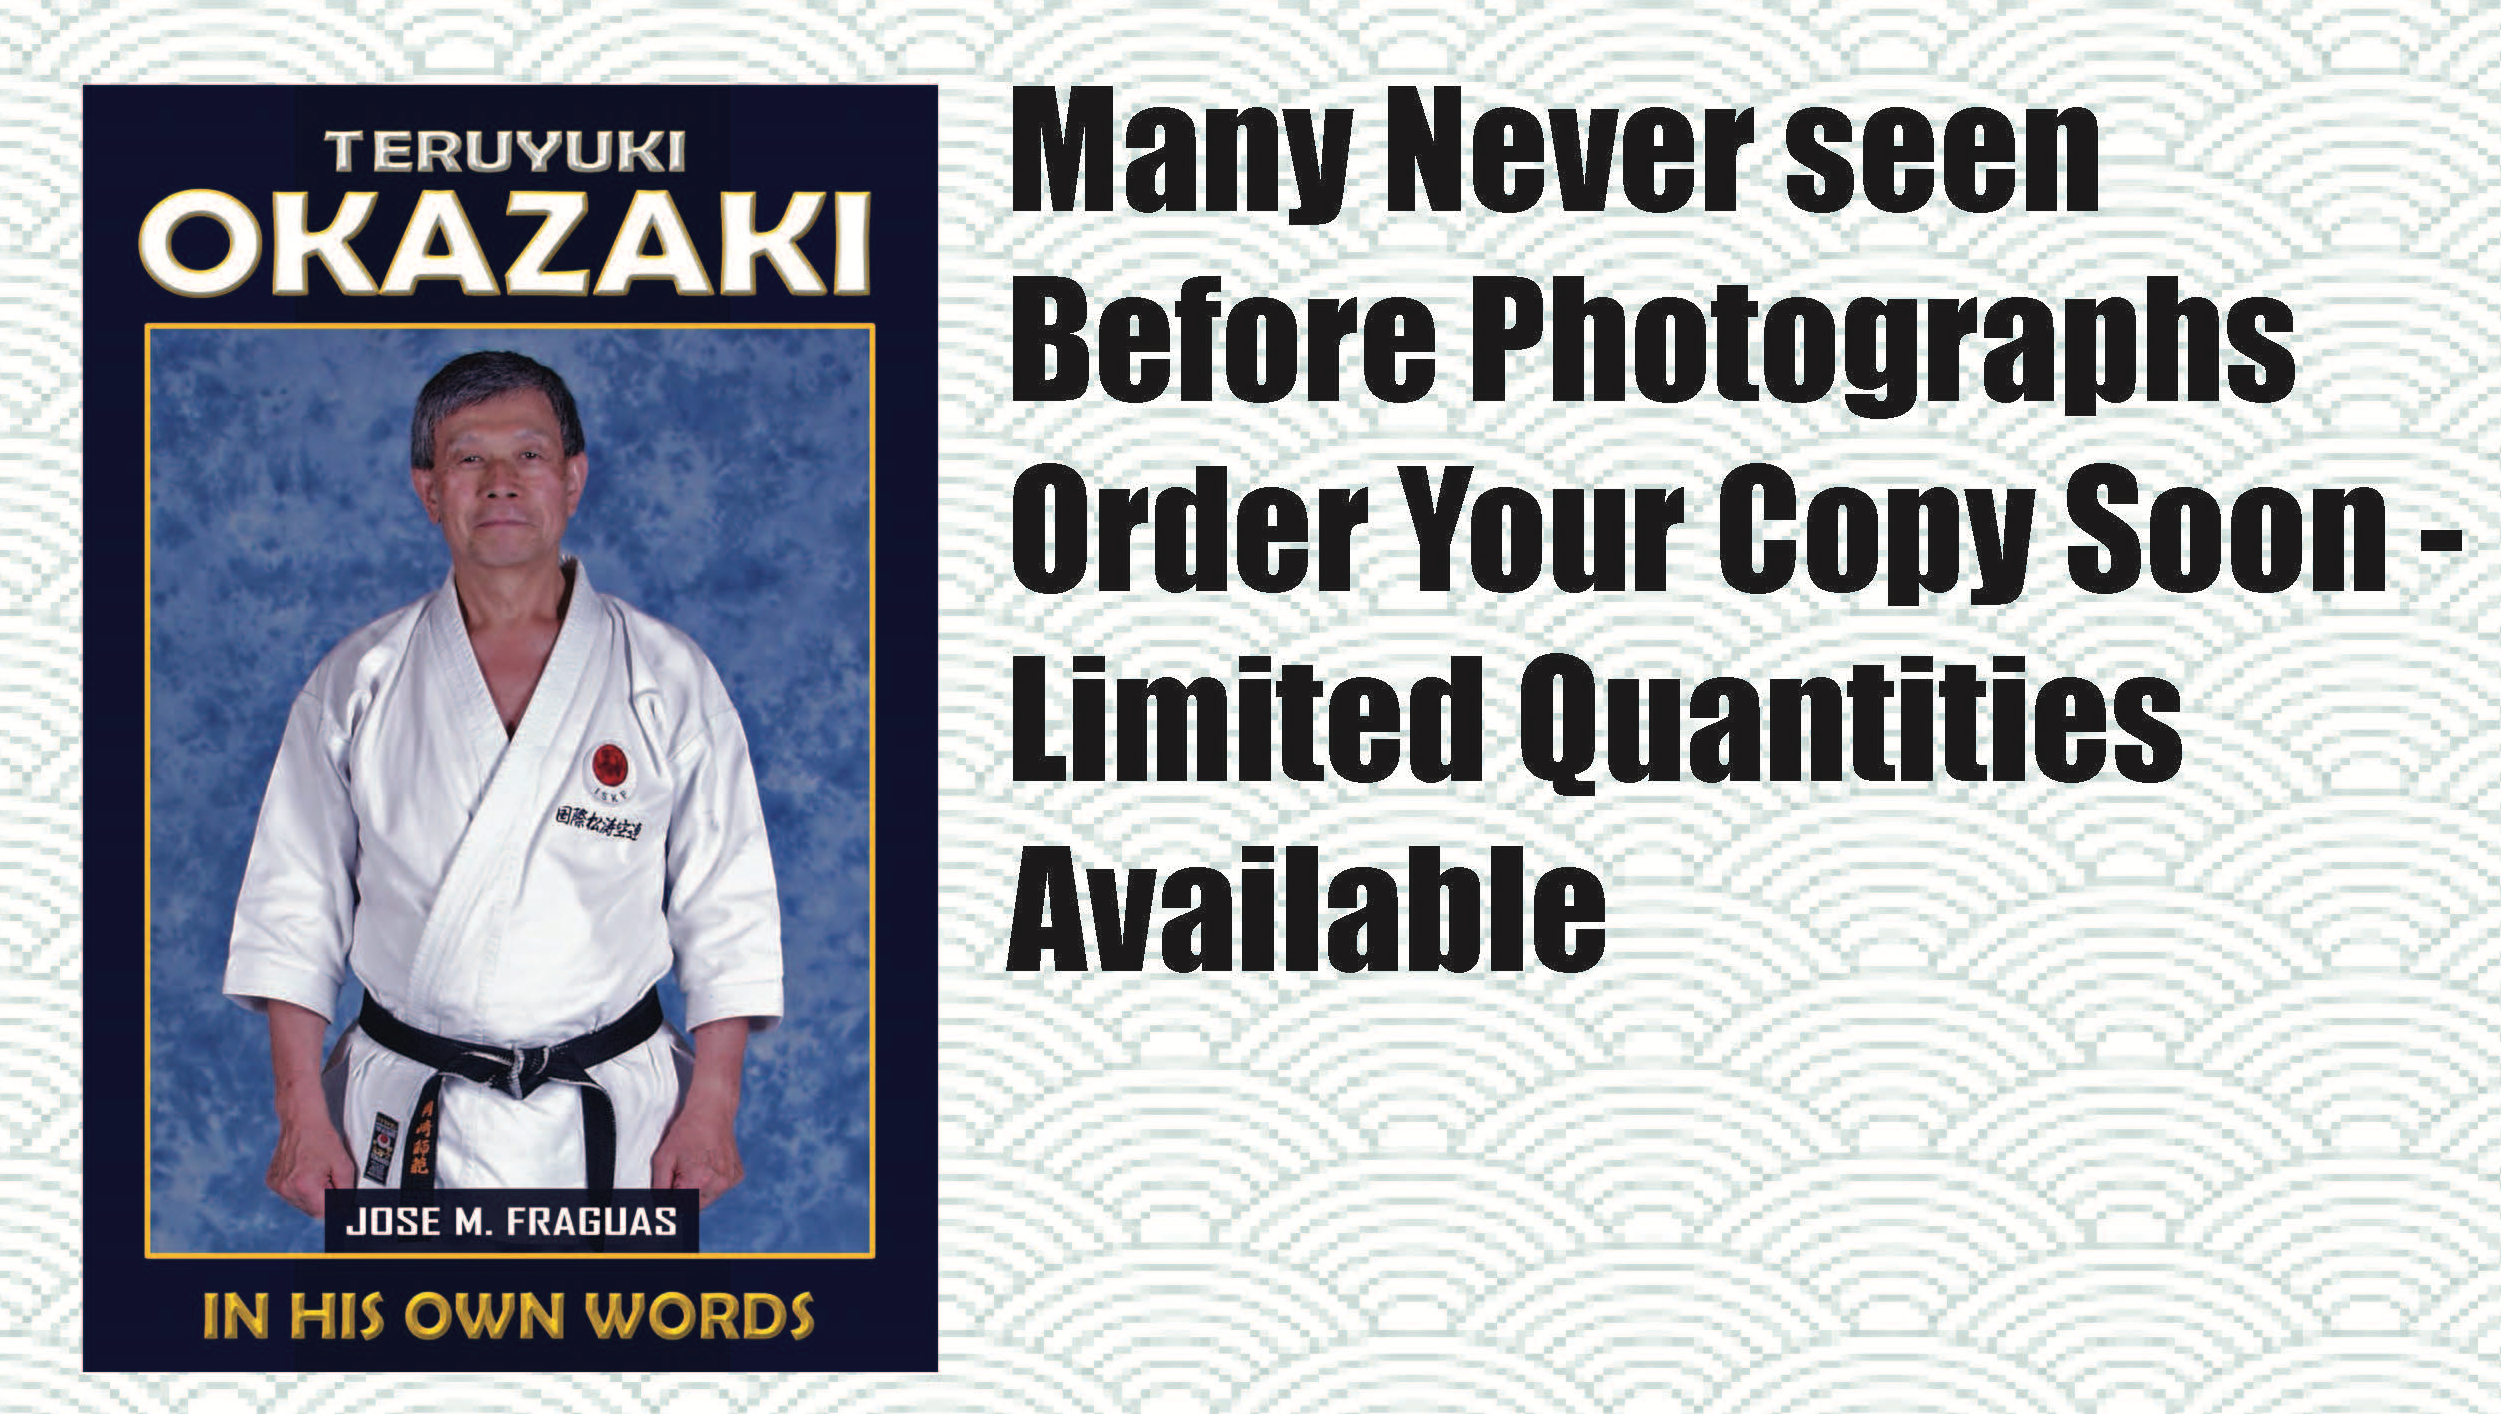 new book – Biography of Grand Master Teruyuki Okazaki, In His Own Words